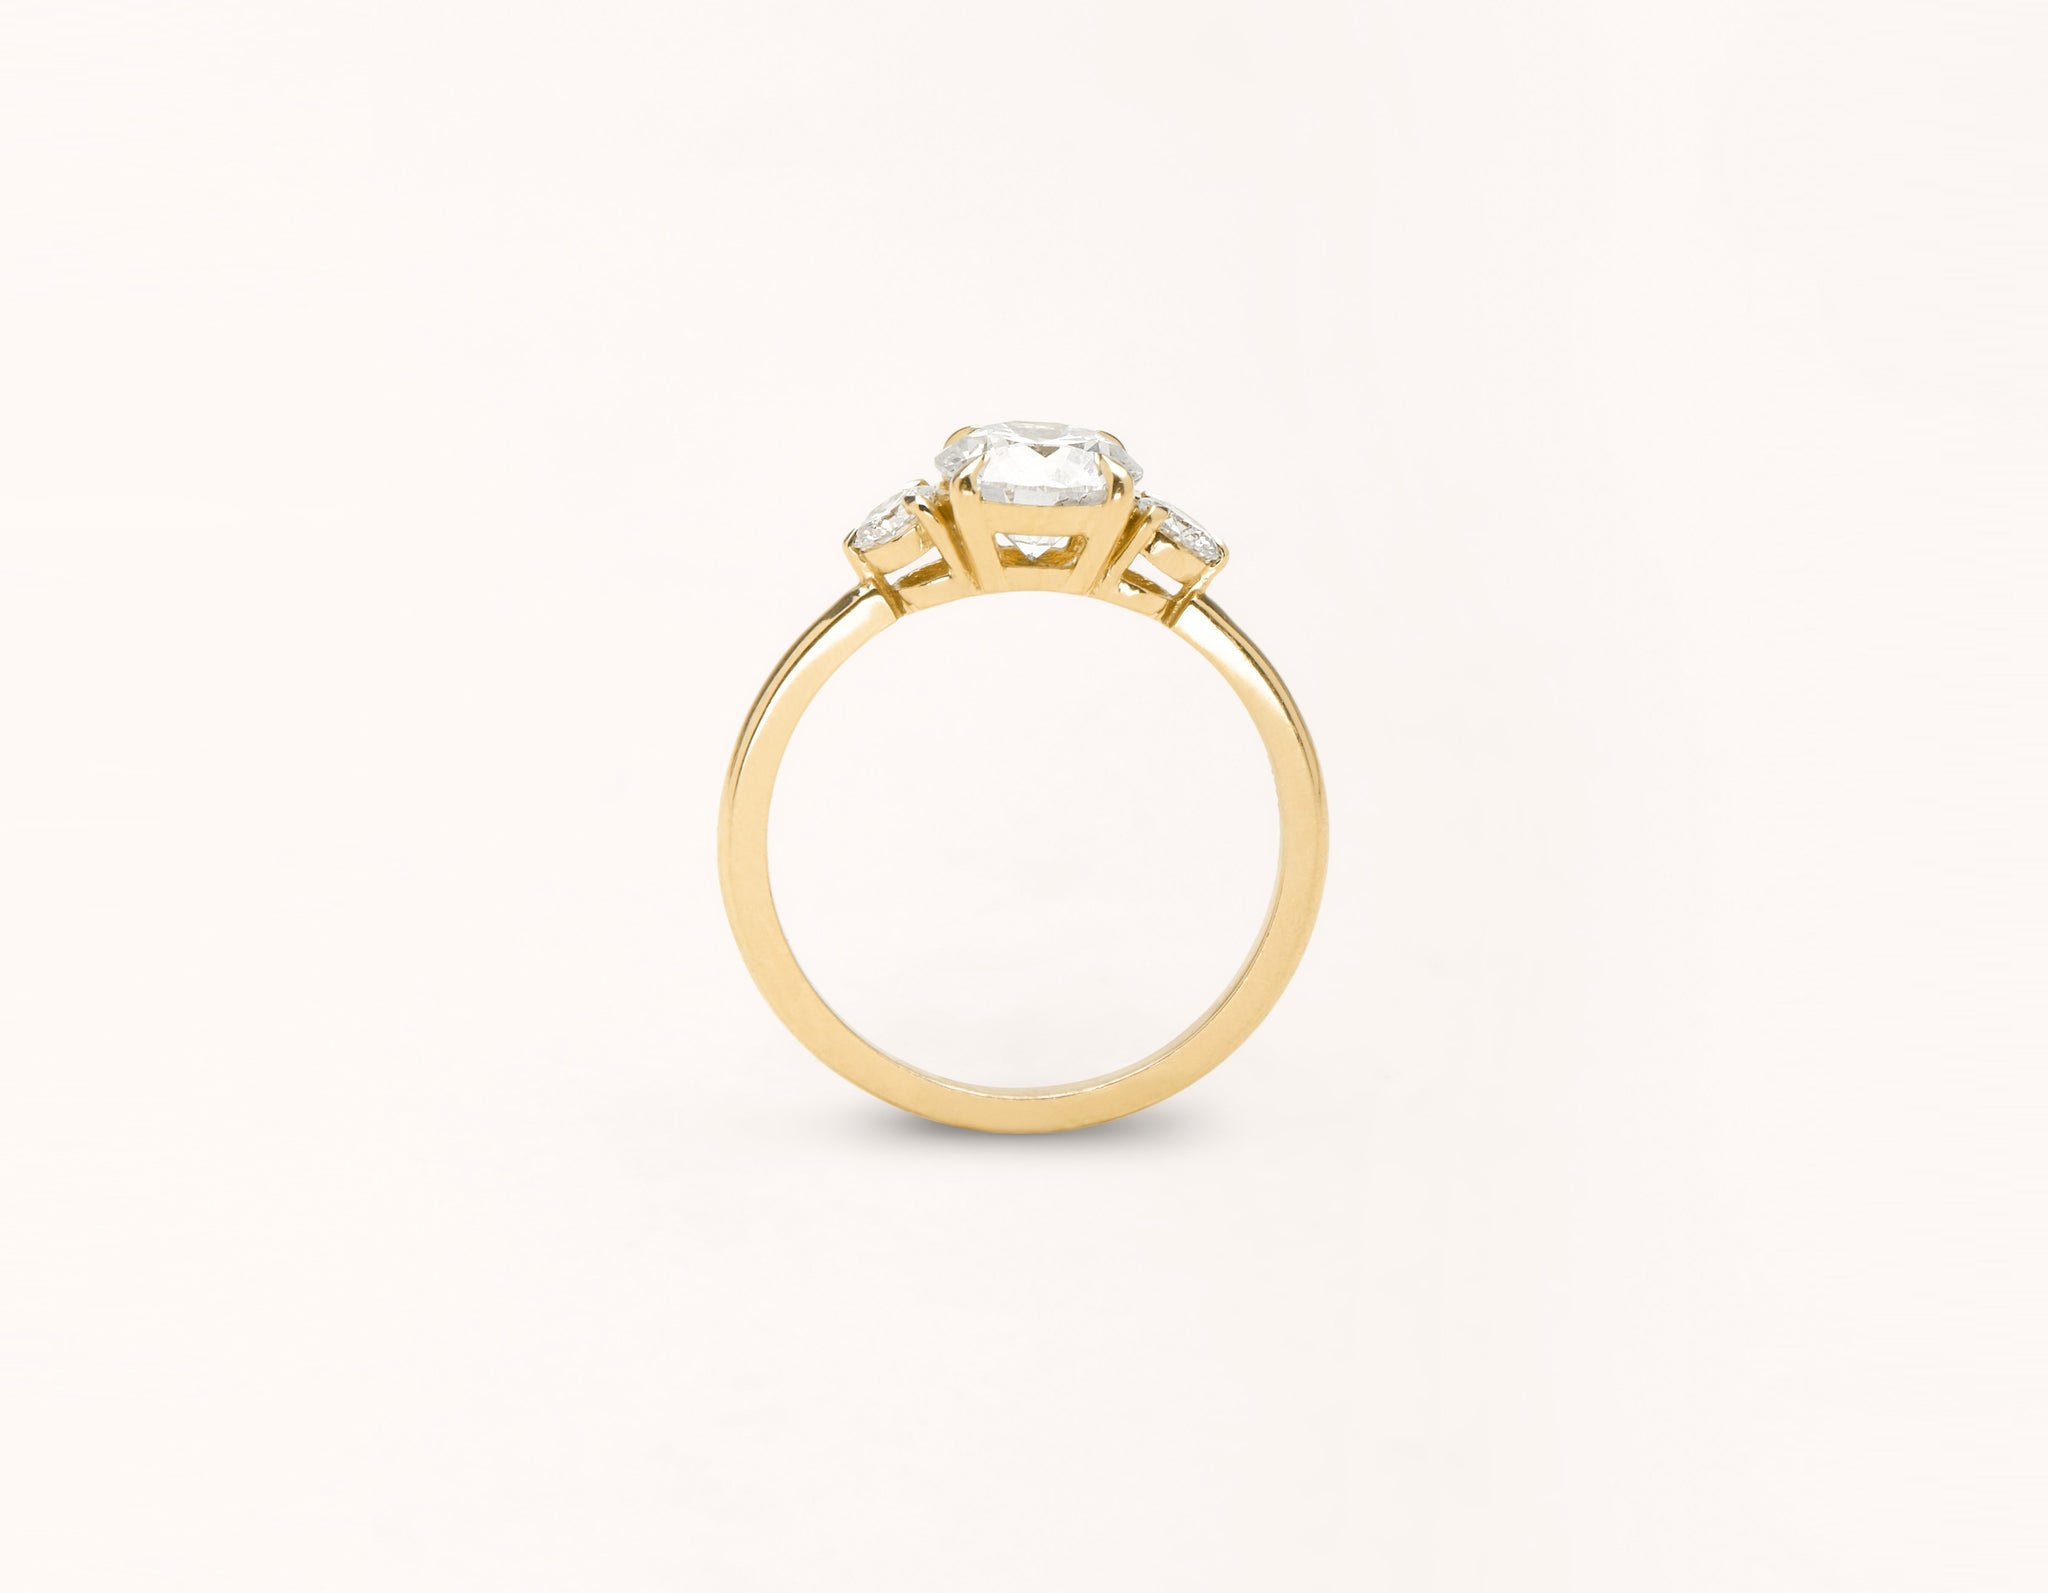 Vrai and Oro modern classic The Three Stone diamond engagement ring 18k solid yellow gold sustainable jewelry